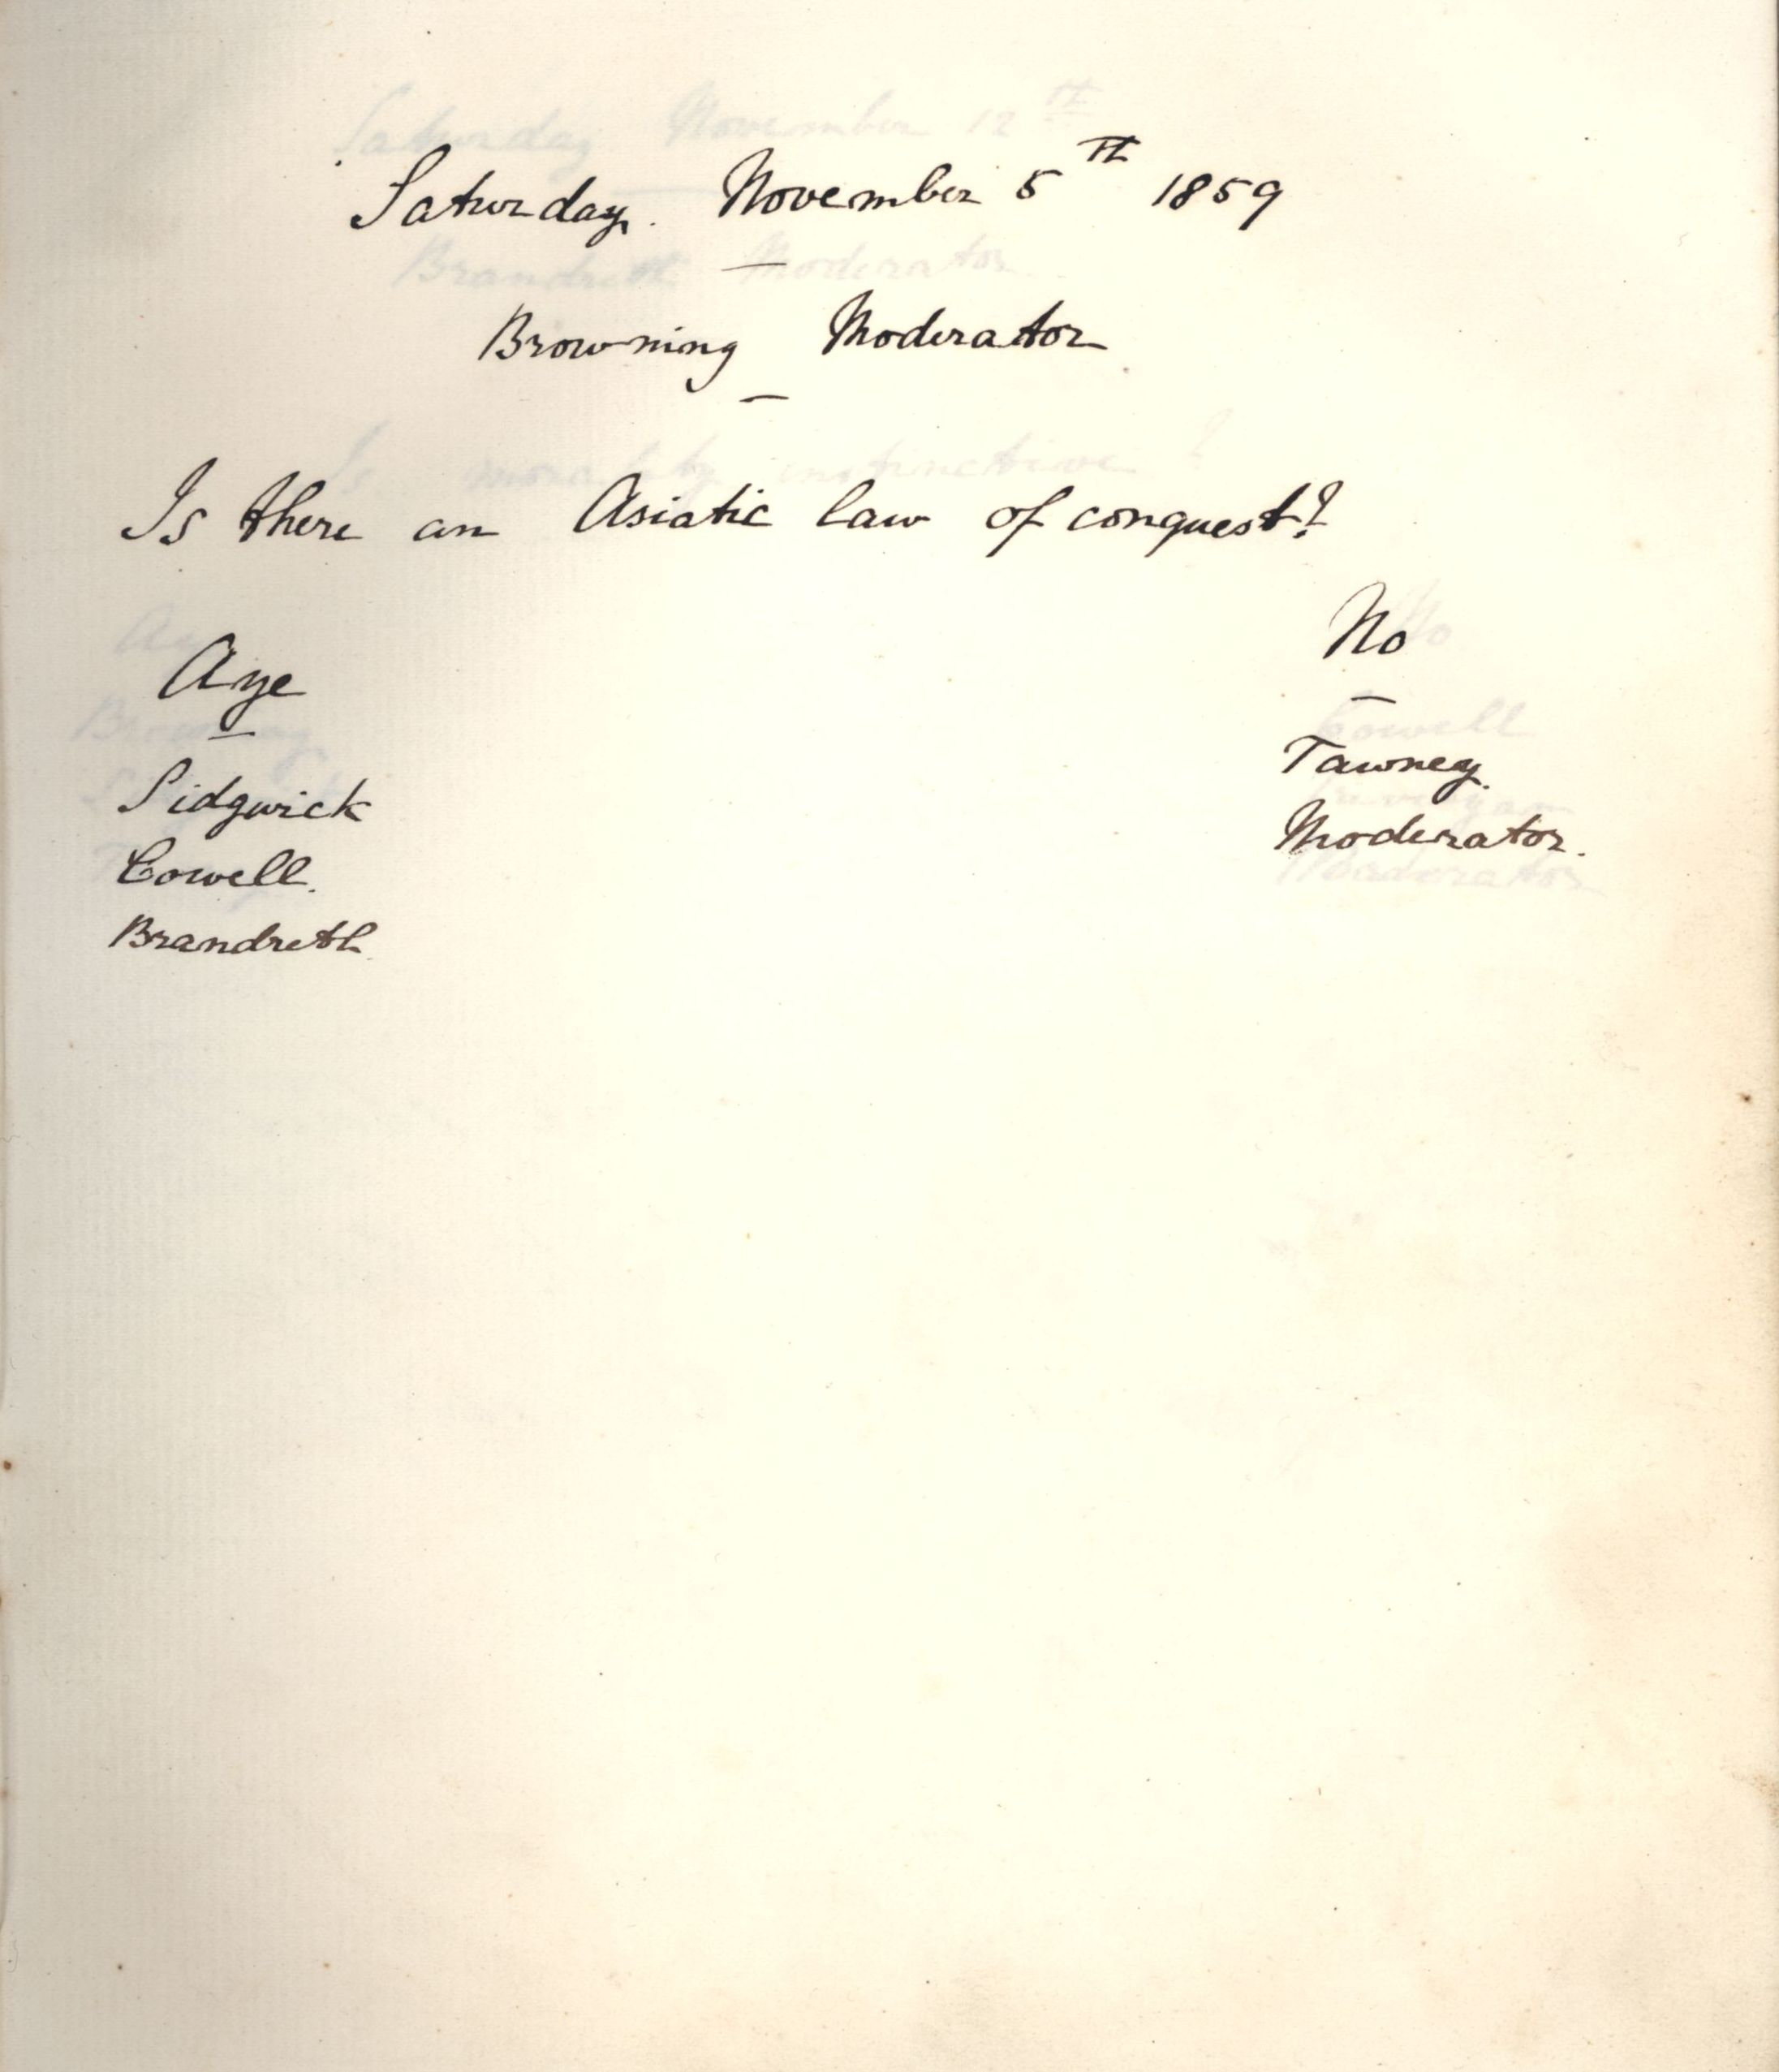 Minutes of a meeting in which Oscar Browning asked 'Is there an Asiatic law of conquest?' [KCAS/39/1/5, 5 November 1859]